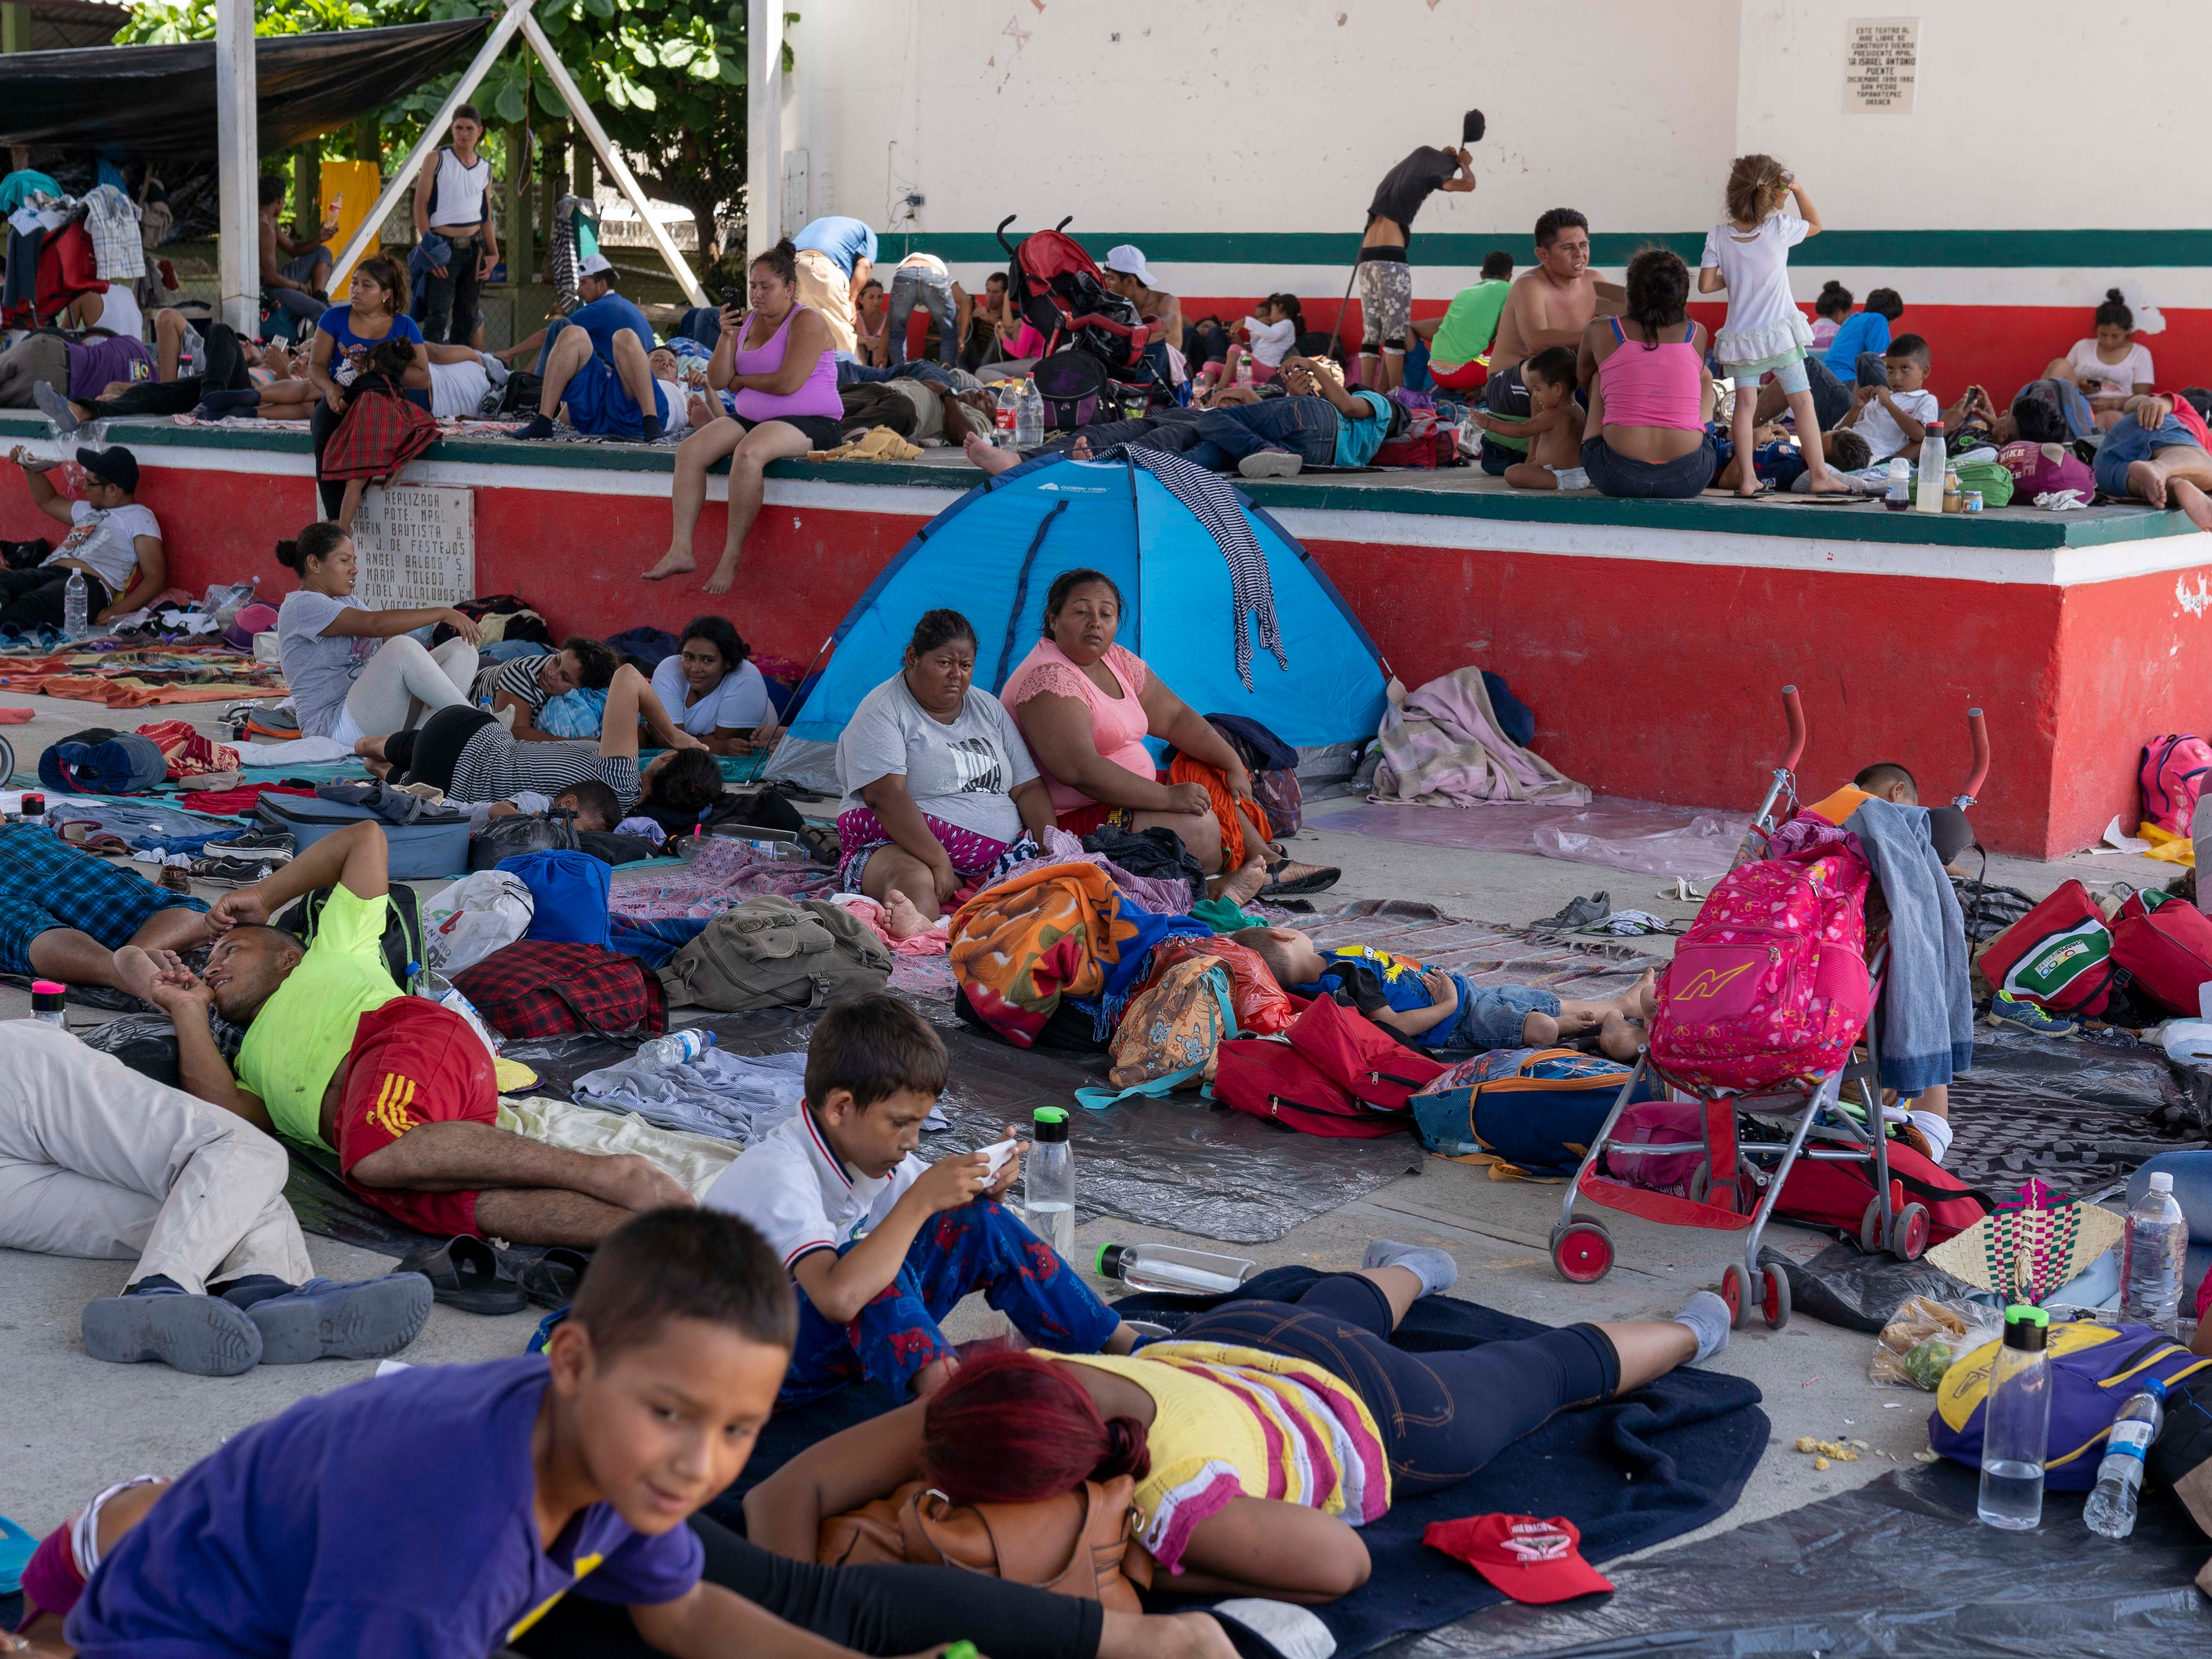 The migrants from Honduras and other Central American countries took a day off to rest on Oct. 28, 2018 in Tapanatepec, Mexico.